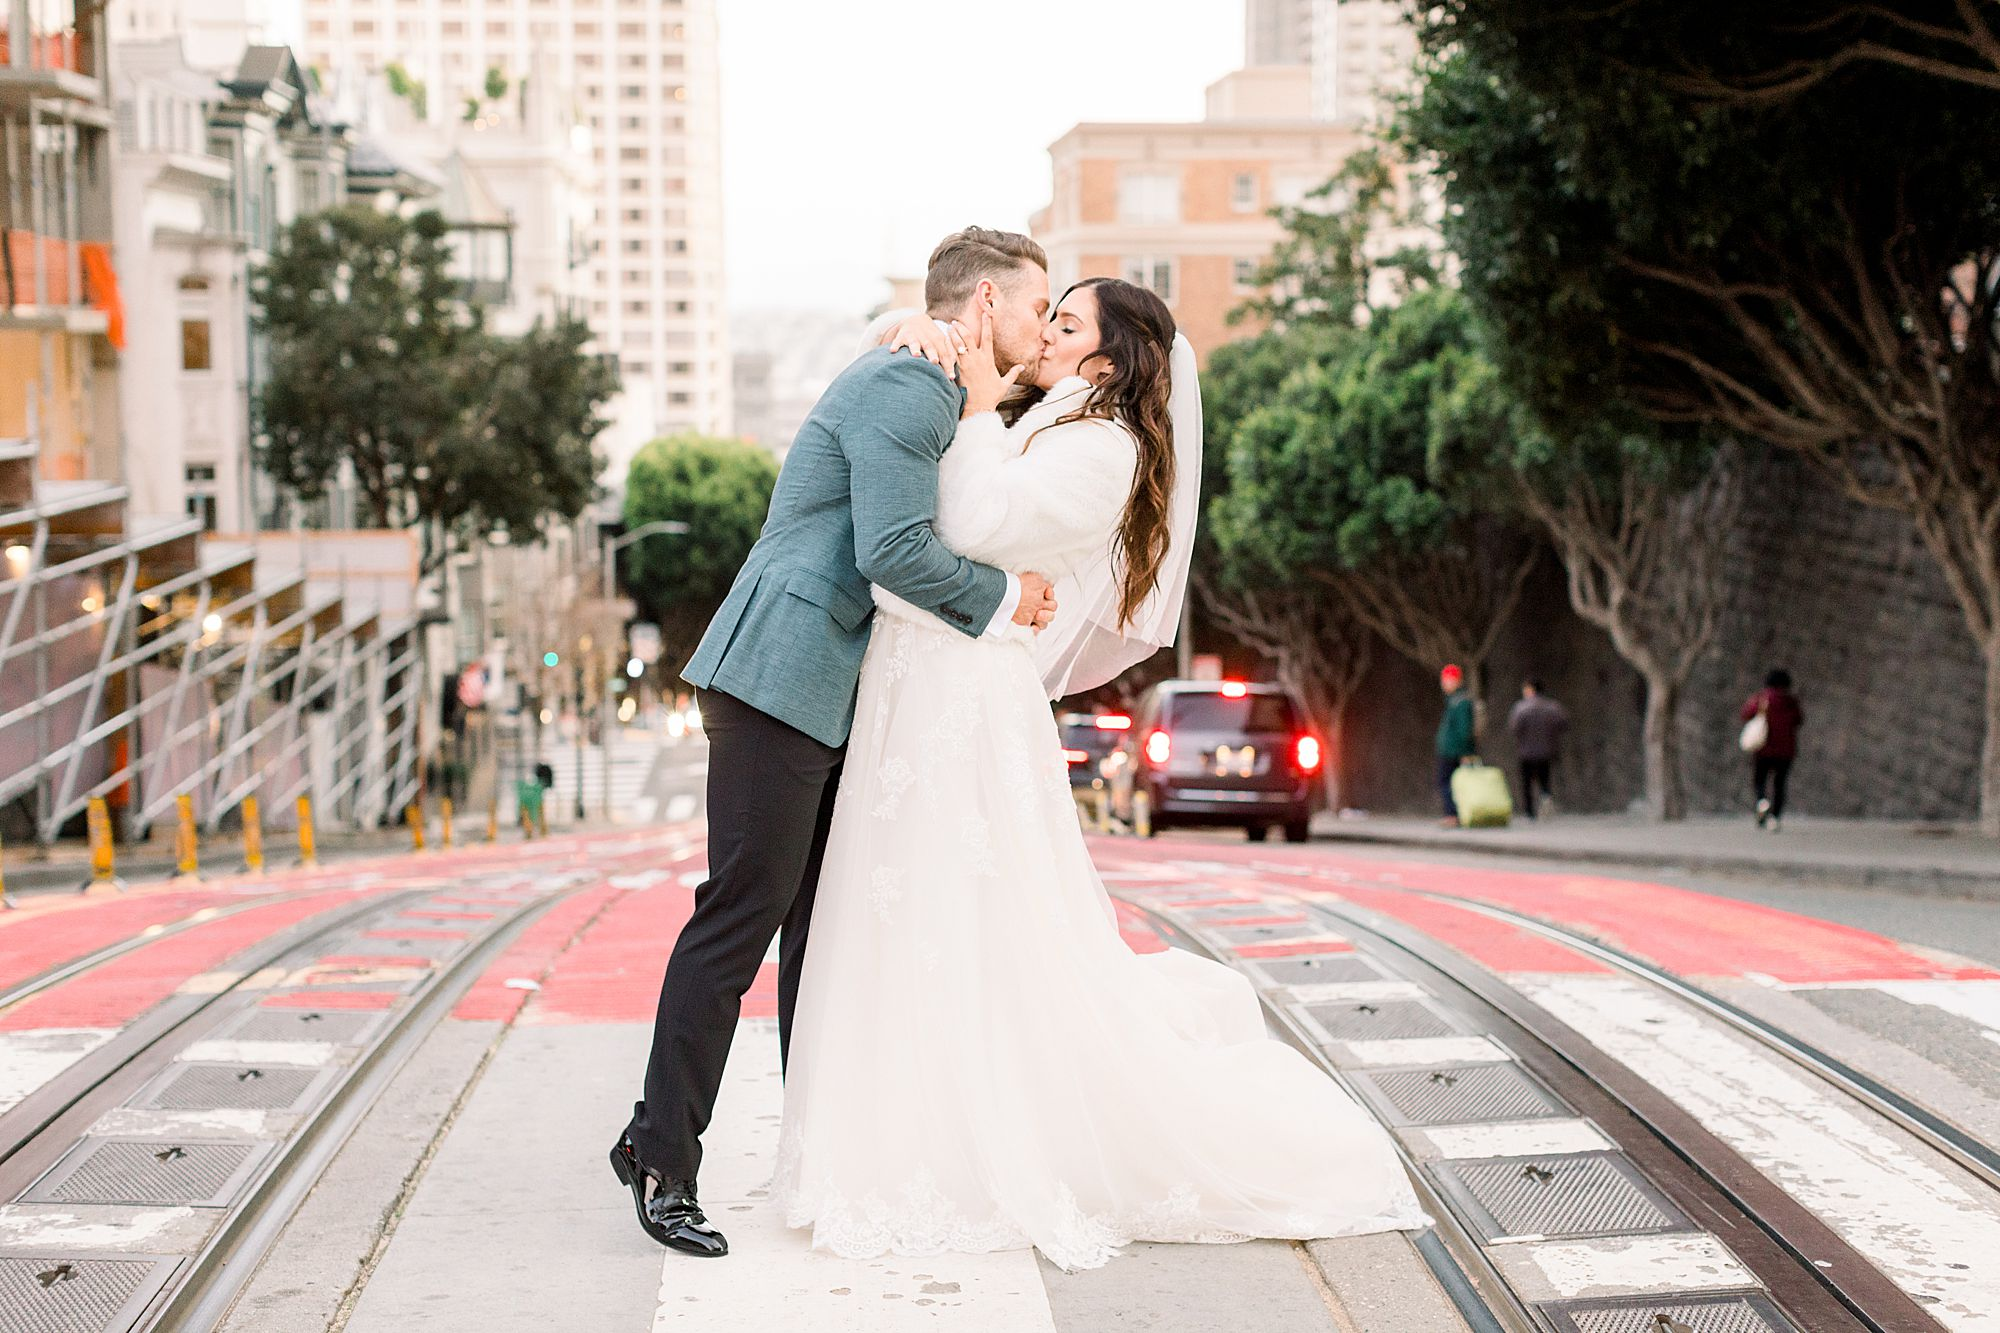 University Club Wedding in San Francisco - Cortney and Jon - San Francisco Wedding - Ashley Baumgartner - SF Wedding Photographer_0080.jpg